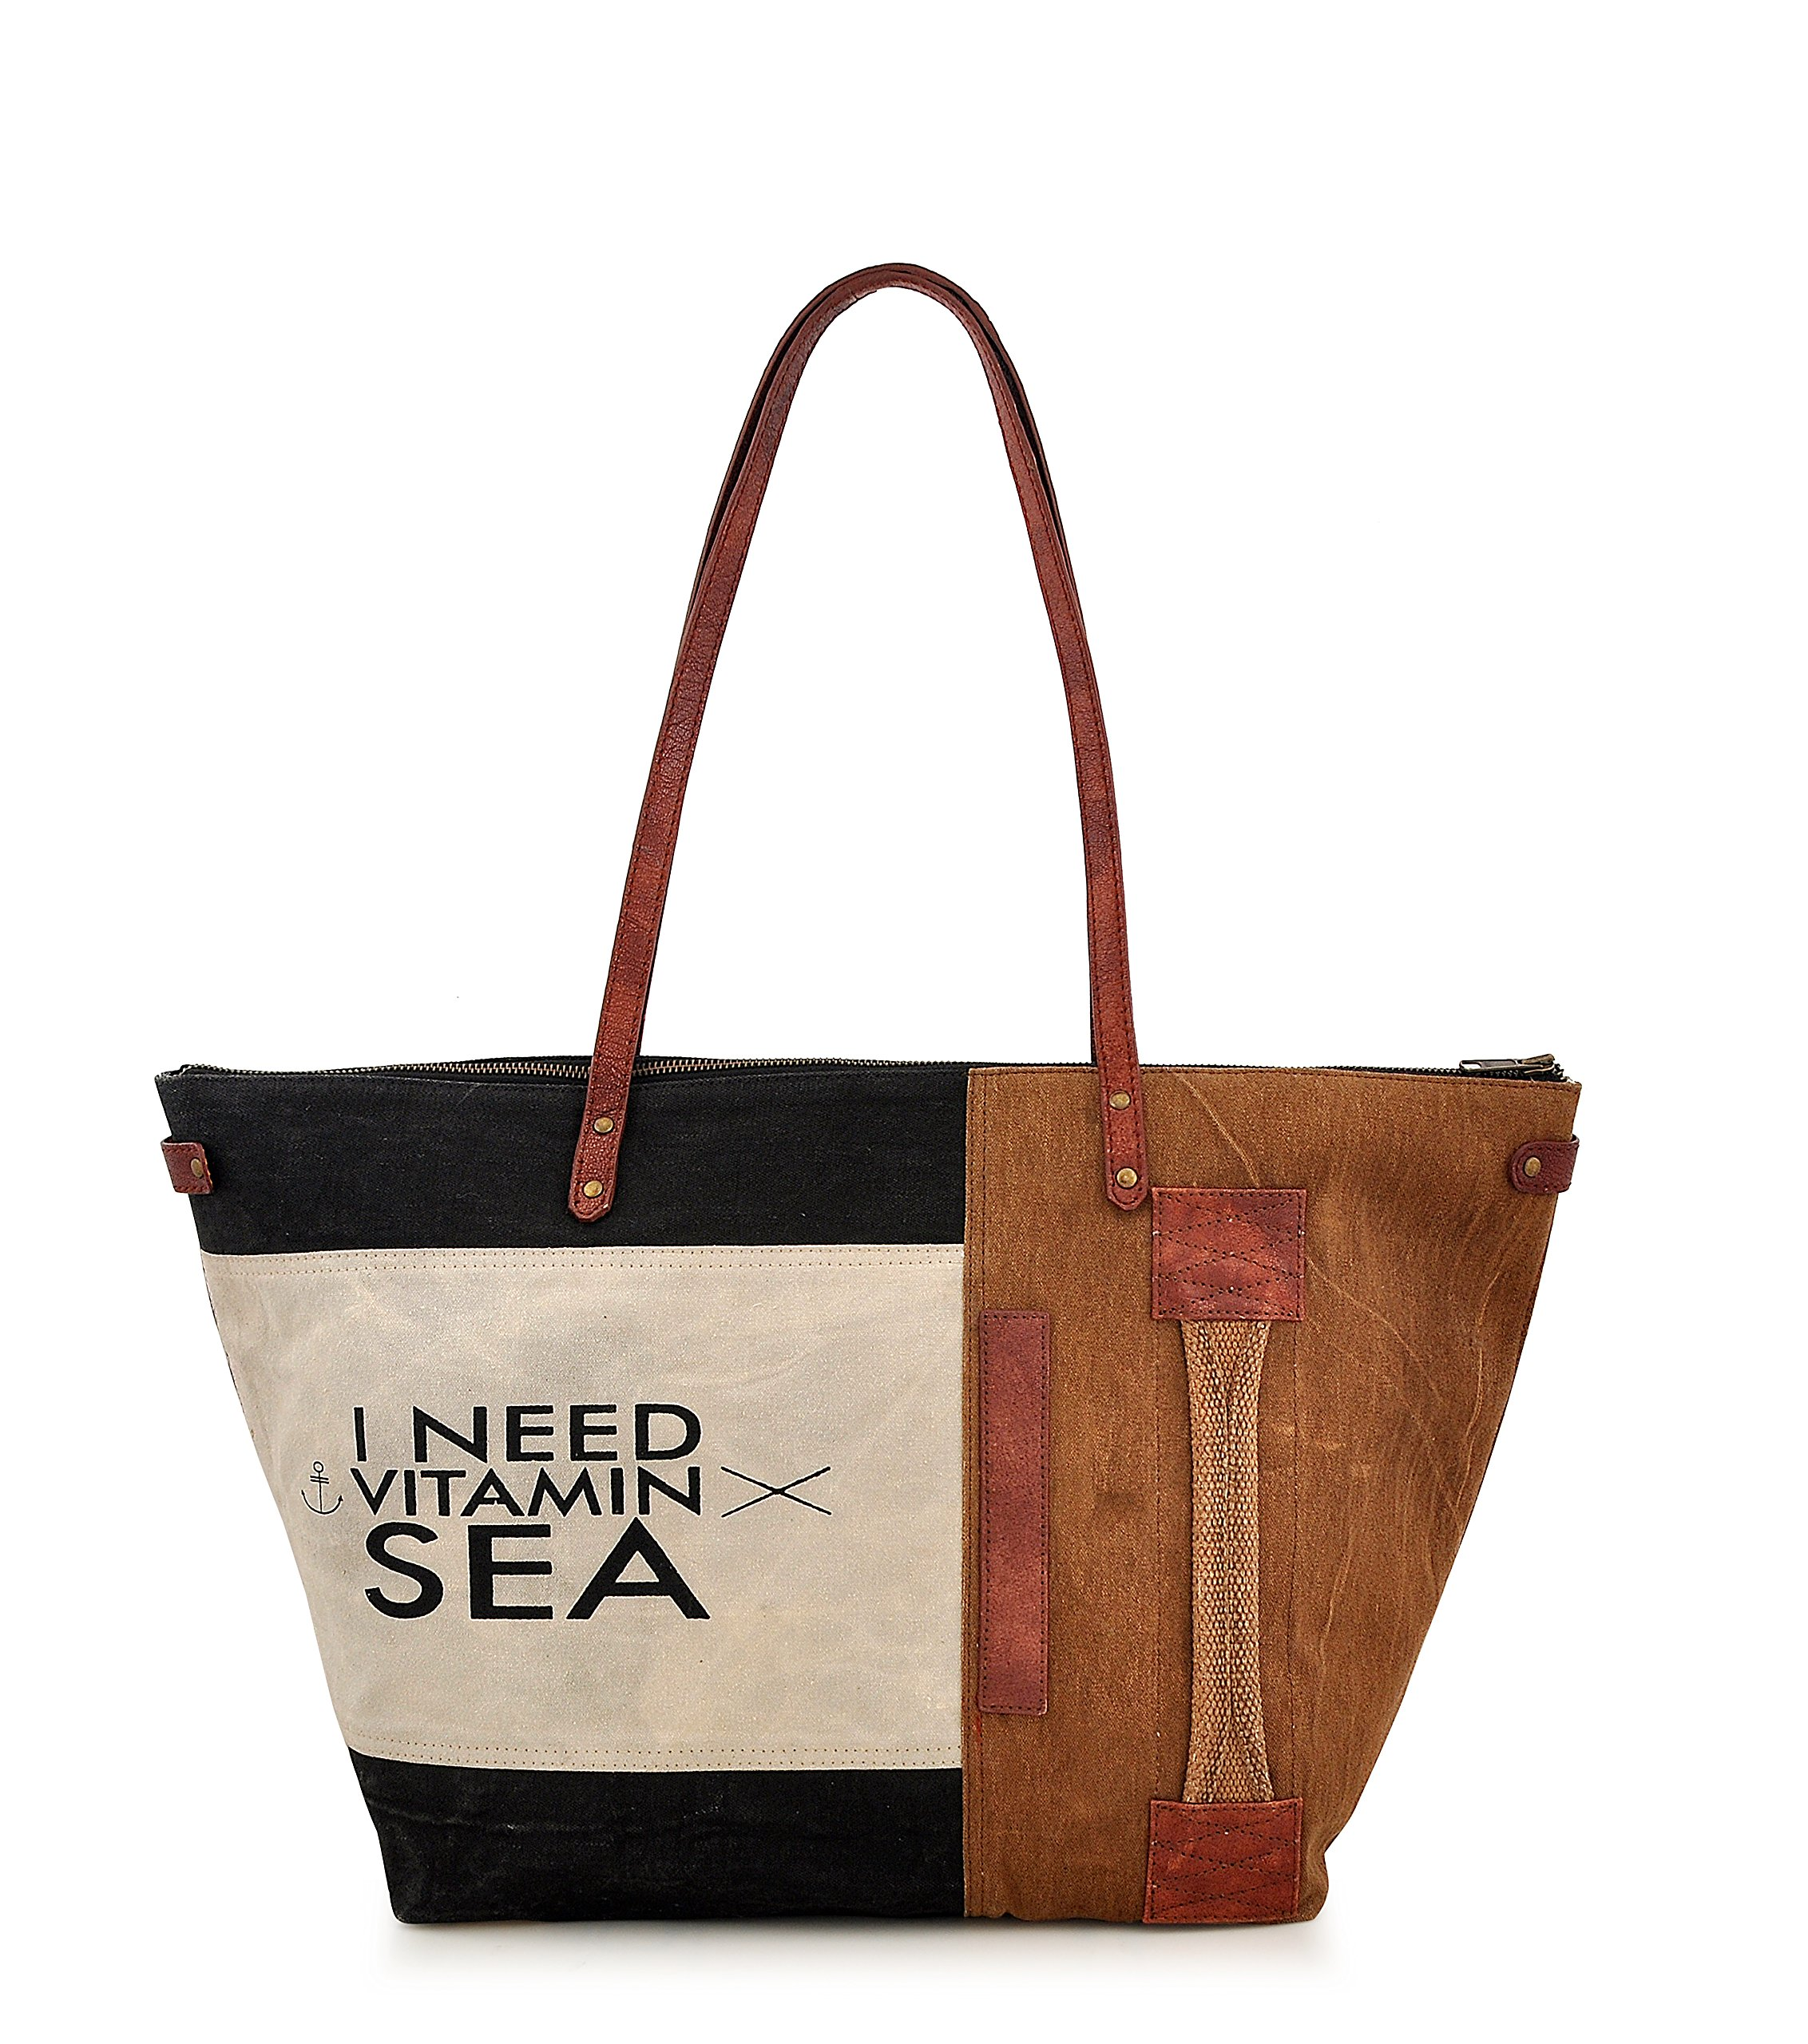 Tote bag for Women, Unique Design, Made of Canvas and Leather, Eco friendly bag, Handbags for Women by Daphne (Vitamin Sea)